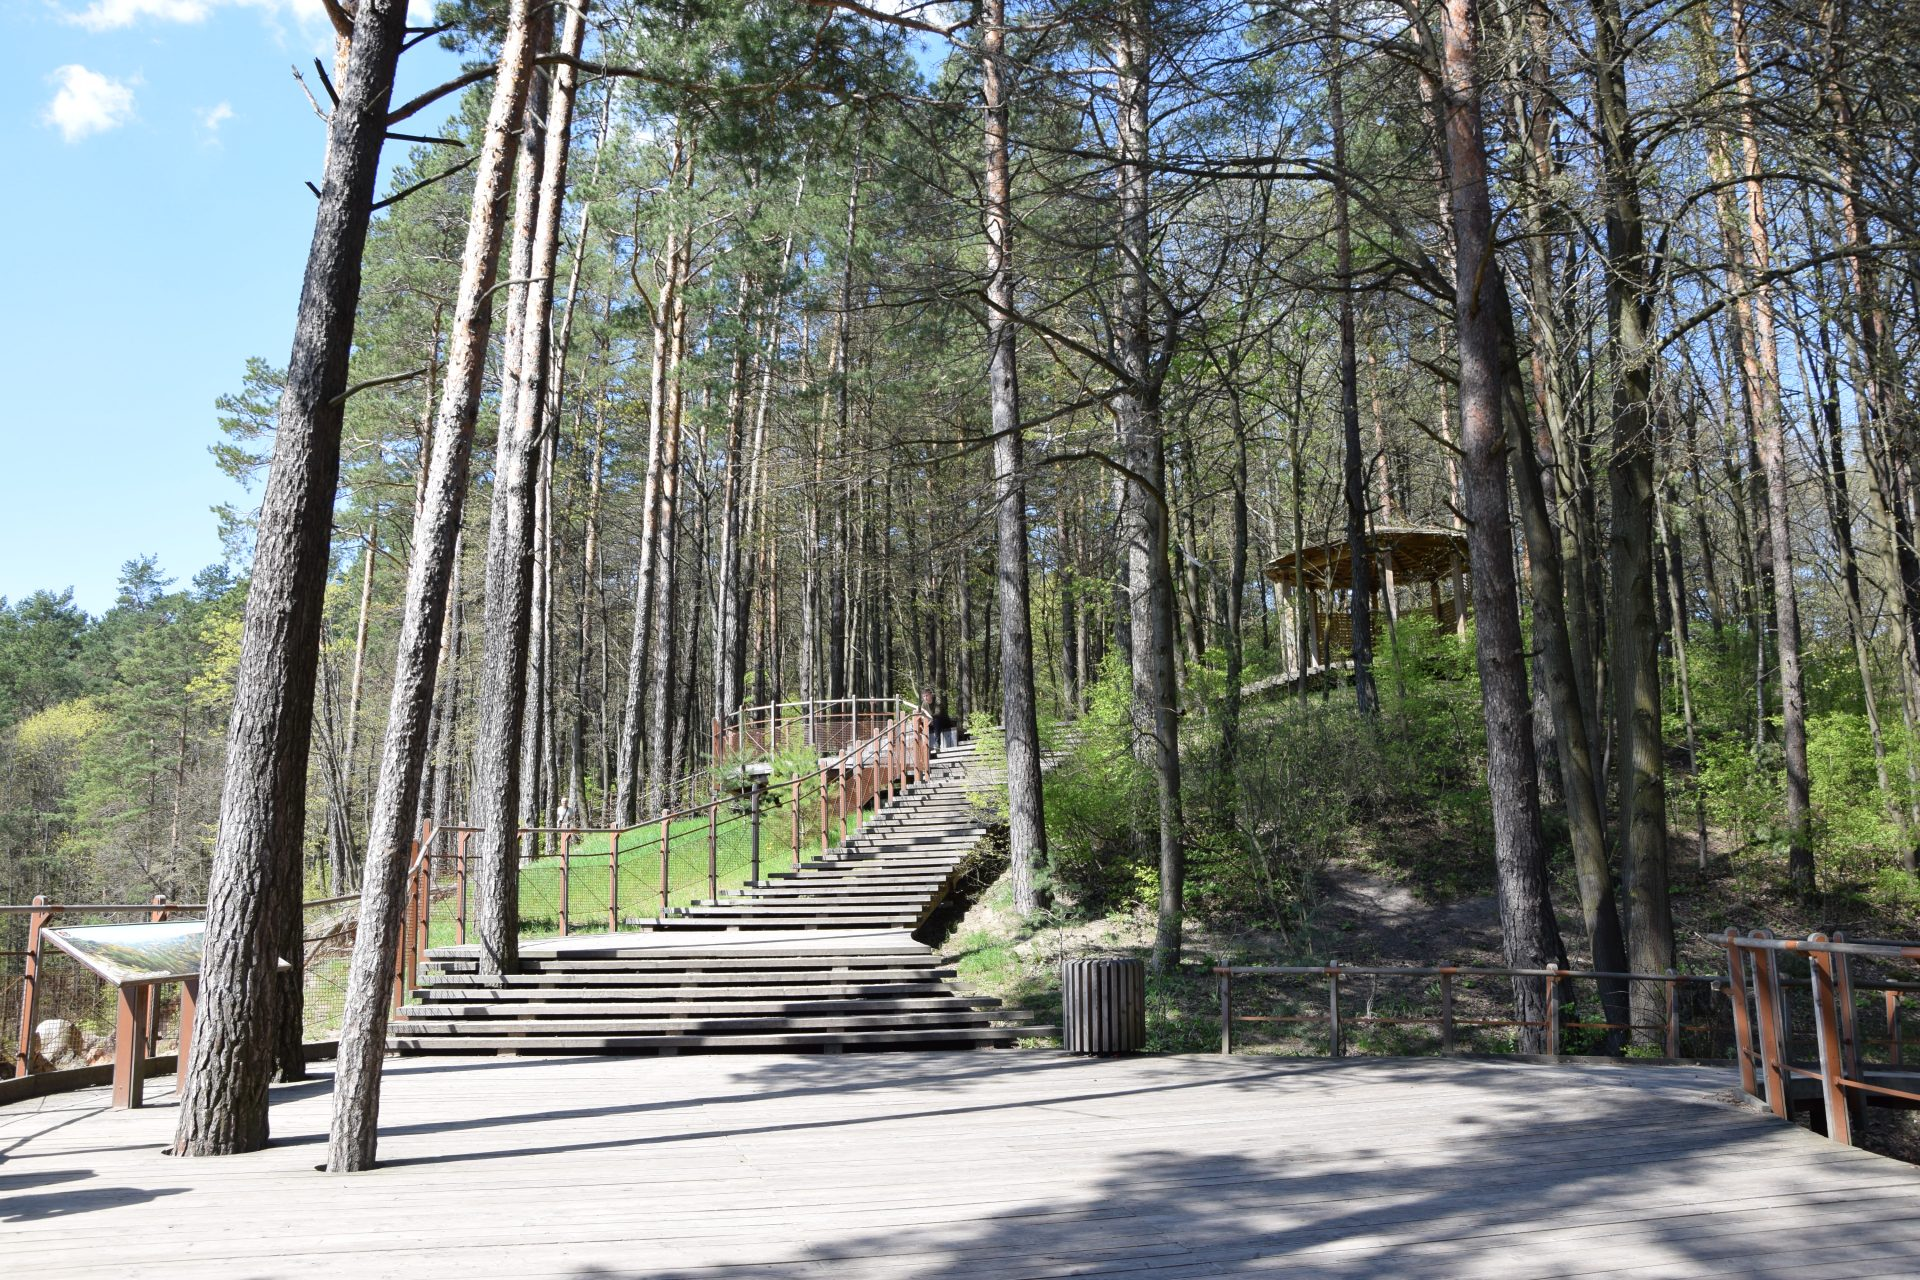 Installation of information systems and minumum infrastructure for visitors in Lithuanian regional parks